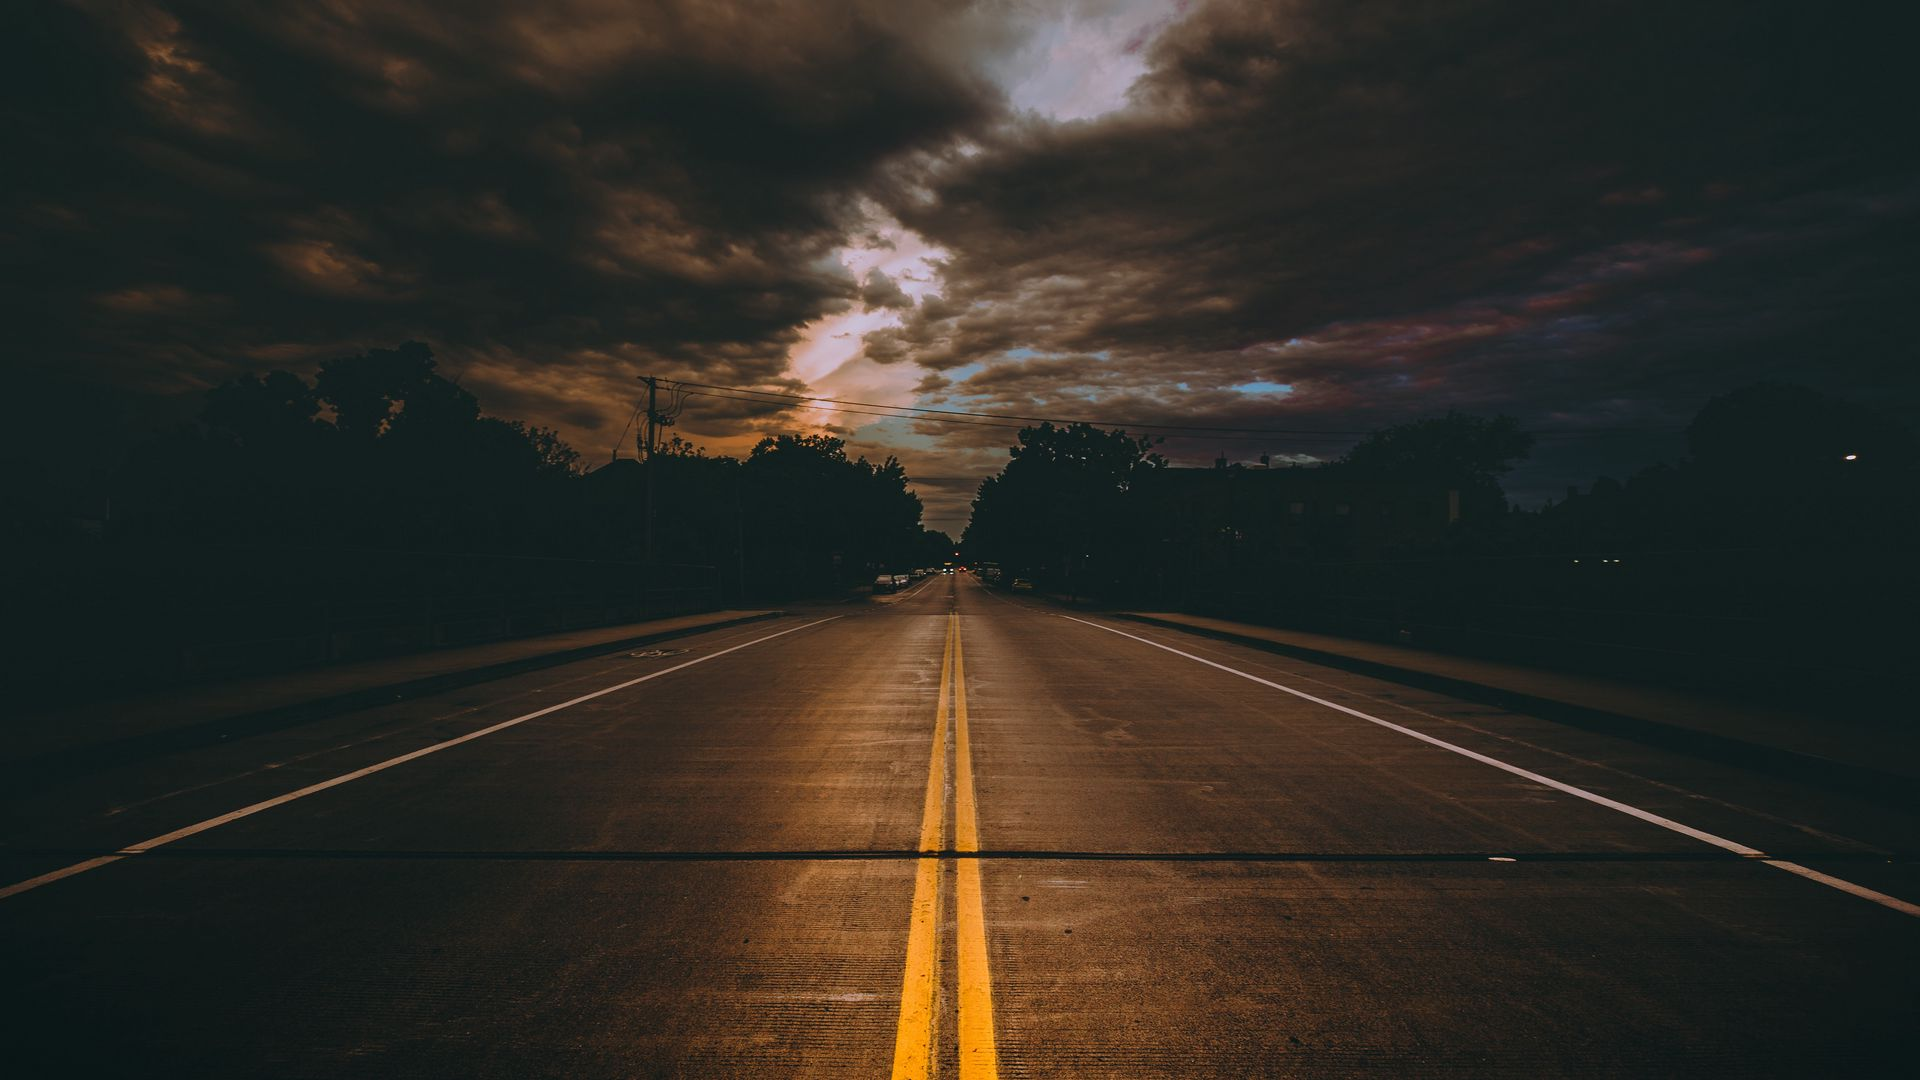 1920x1080 Wallpaper road, marking, cloudy, clouds, minneapolis, united states